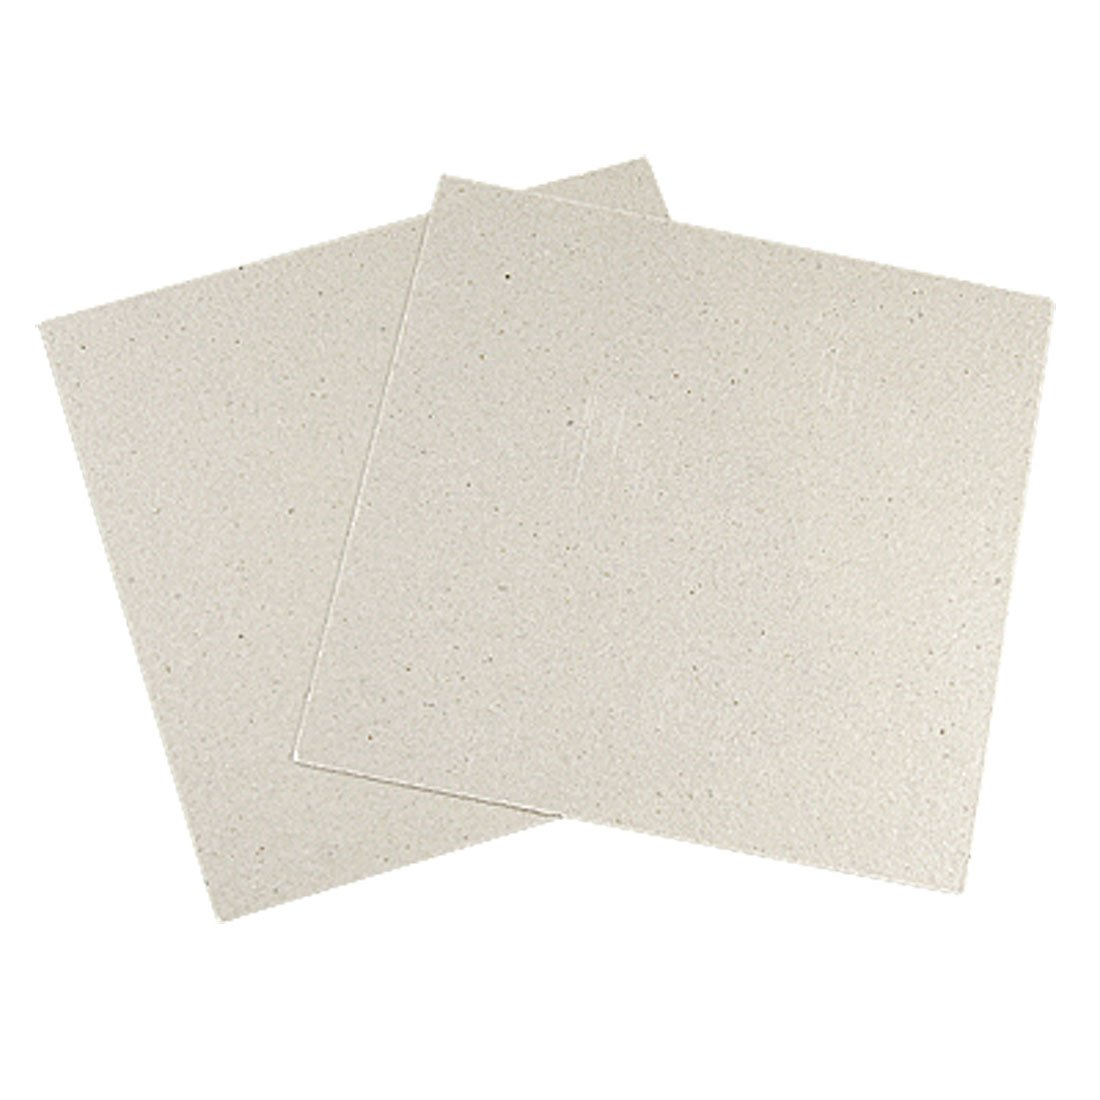 2 Pcs Replacement 12 x 12cm Mica Plates for Microwave Oven uxcell SYNCELEC007047